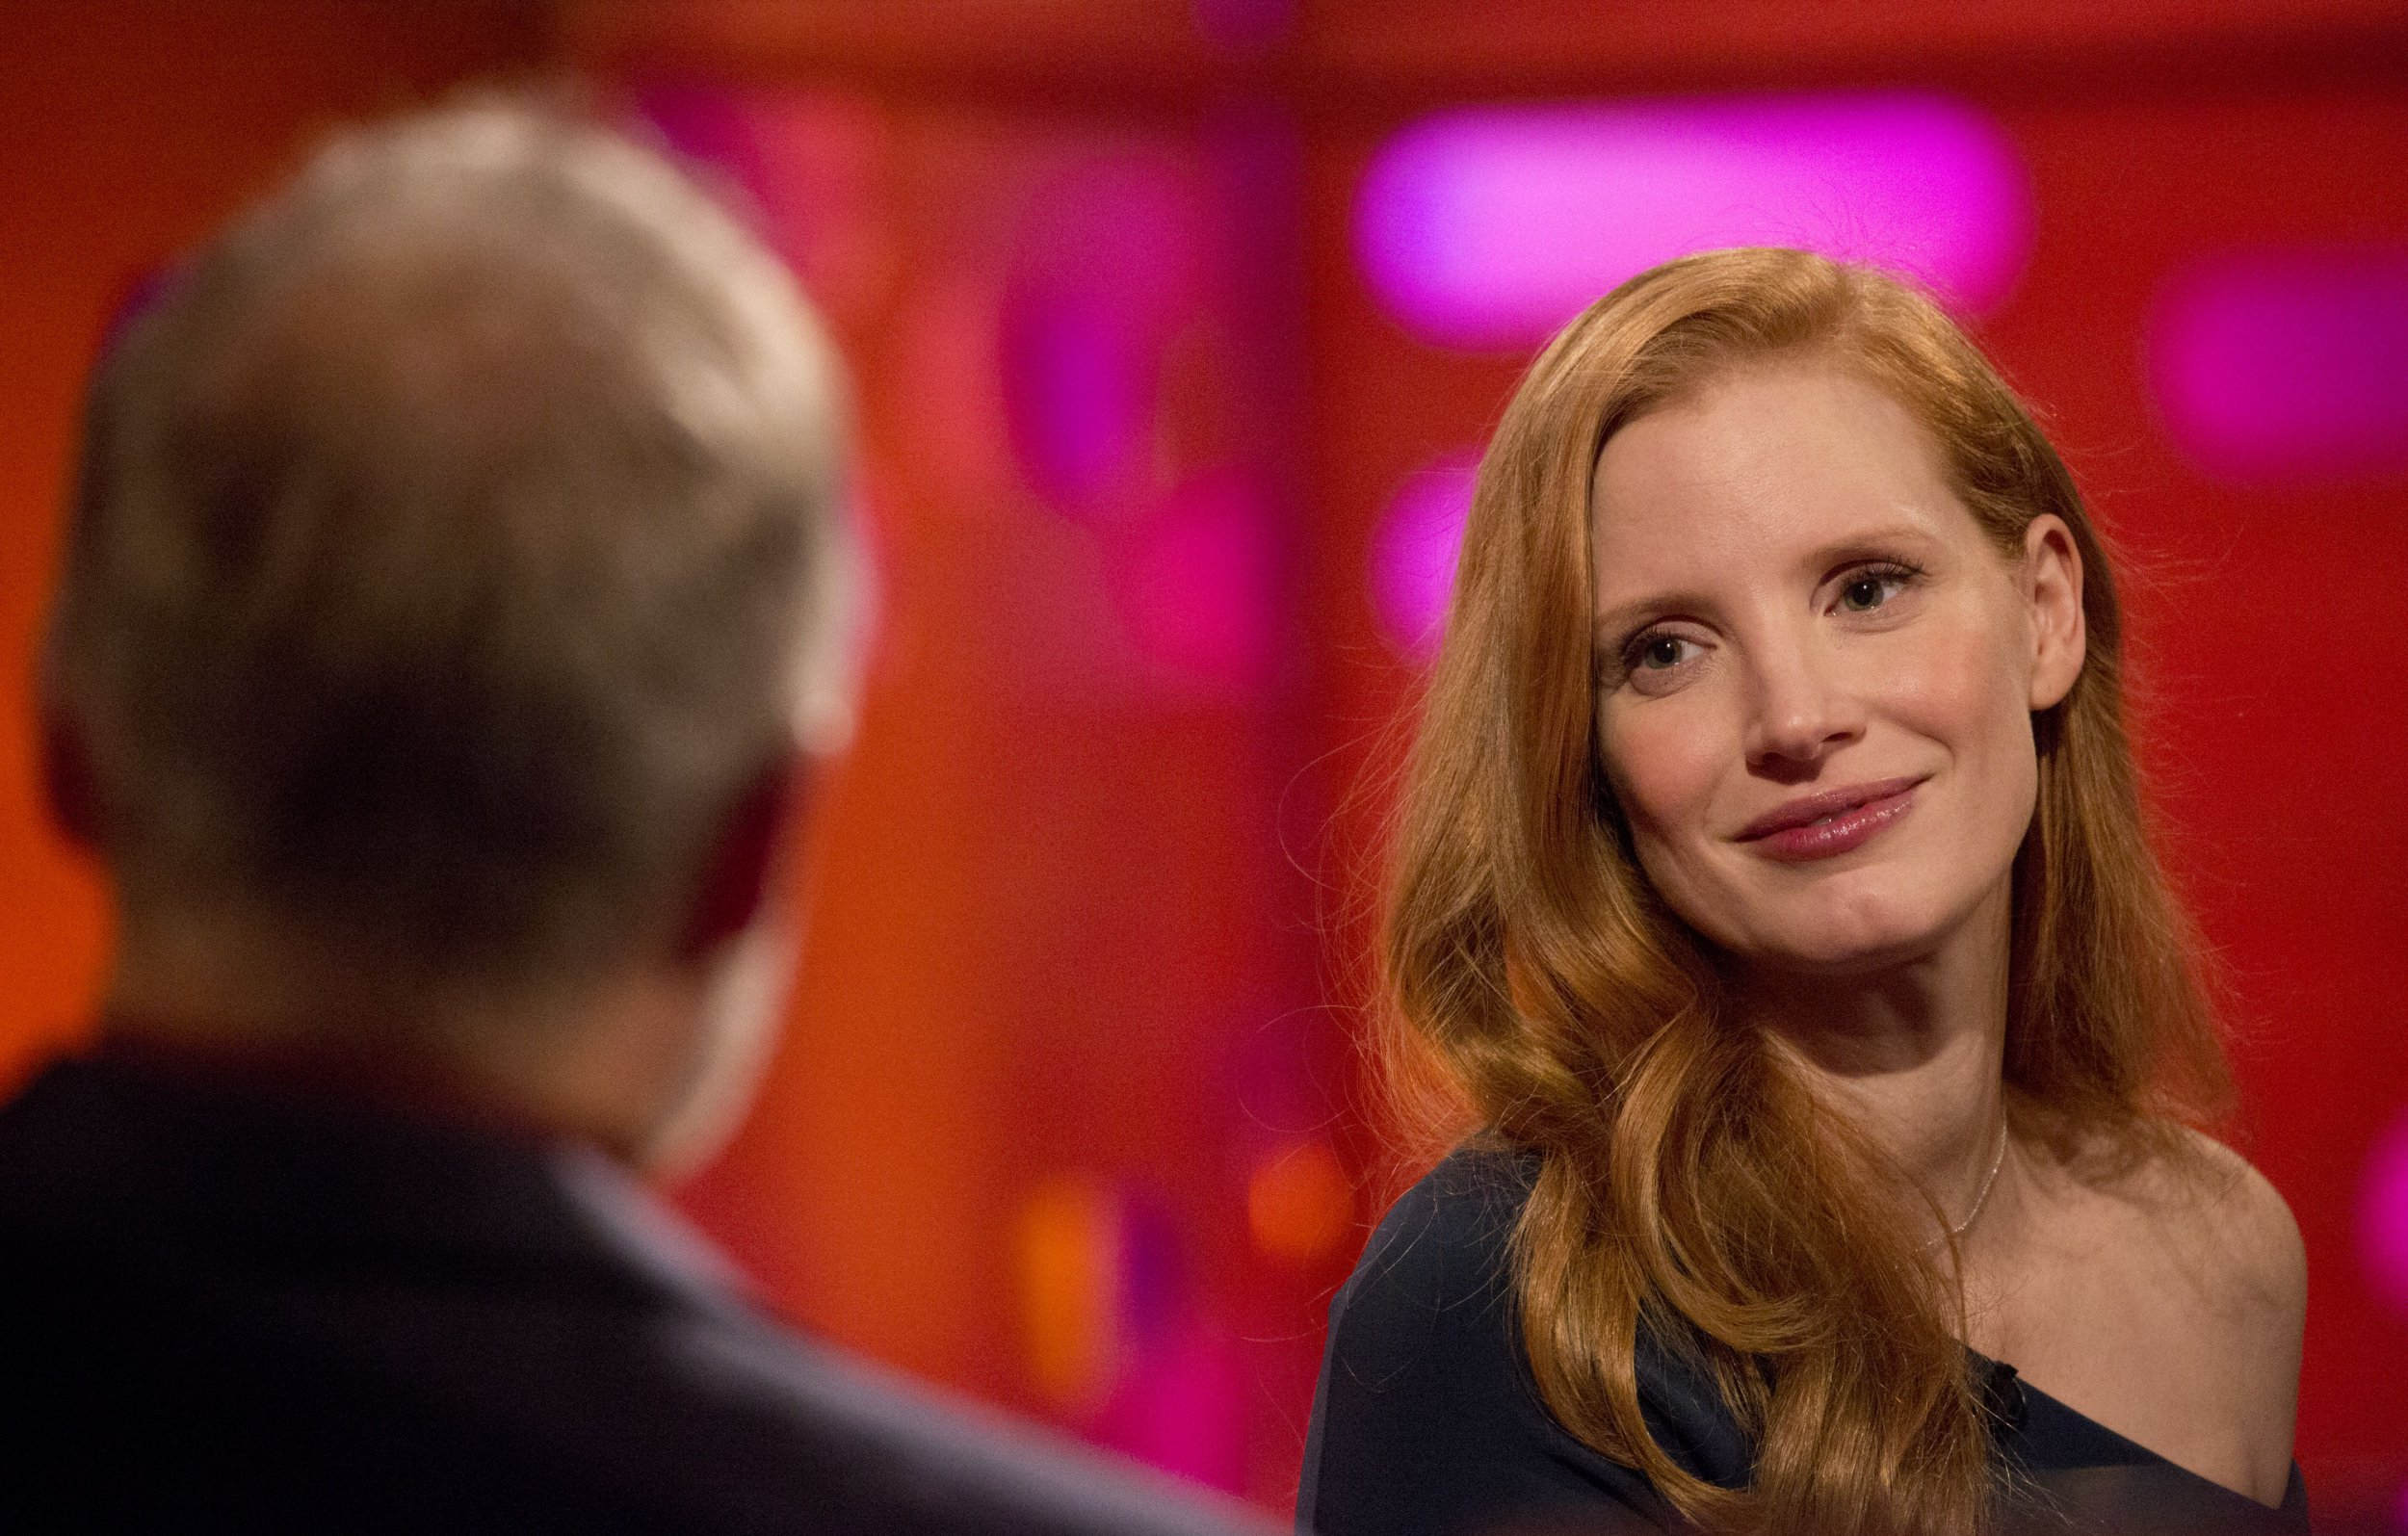 Jessica Chastain was told to 'calm down' after tweeting about the Weinstein scandal